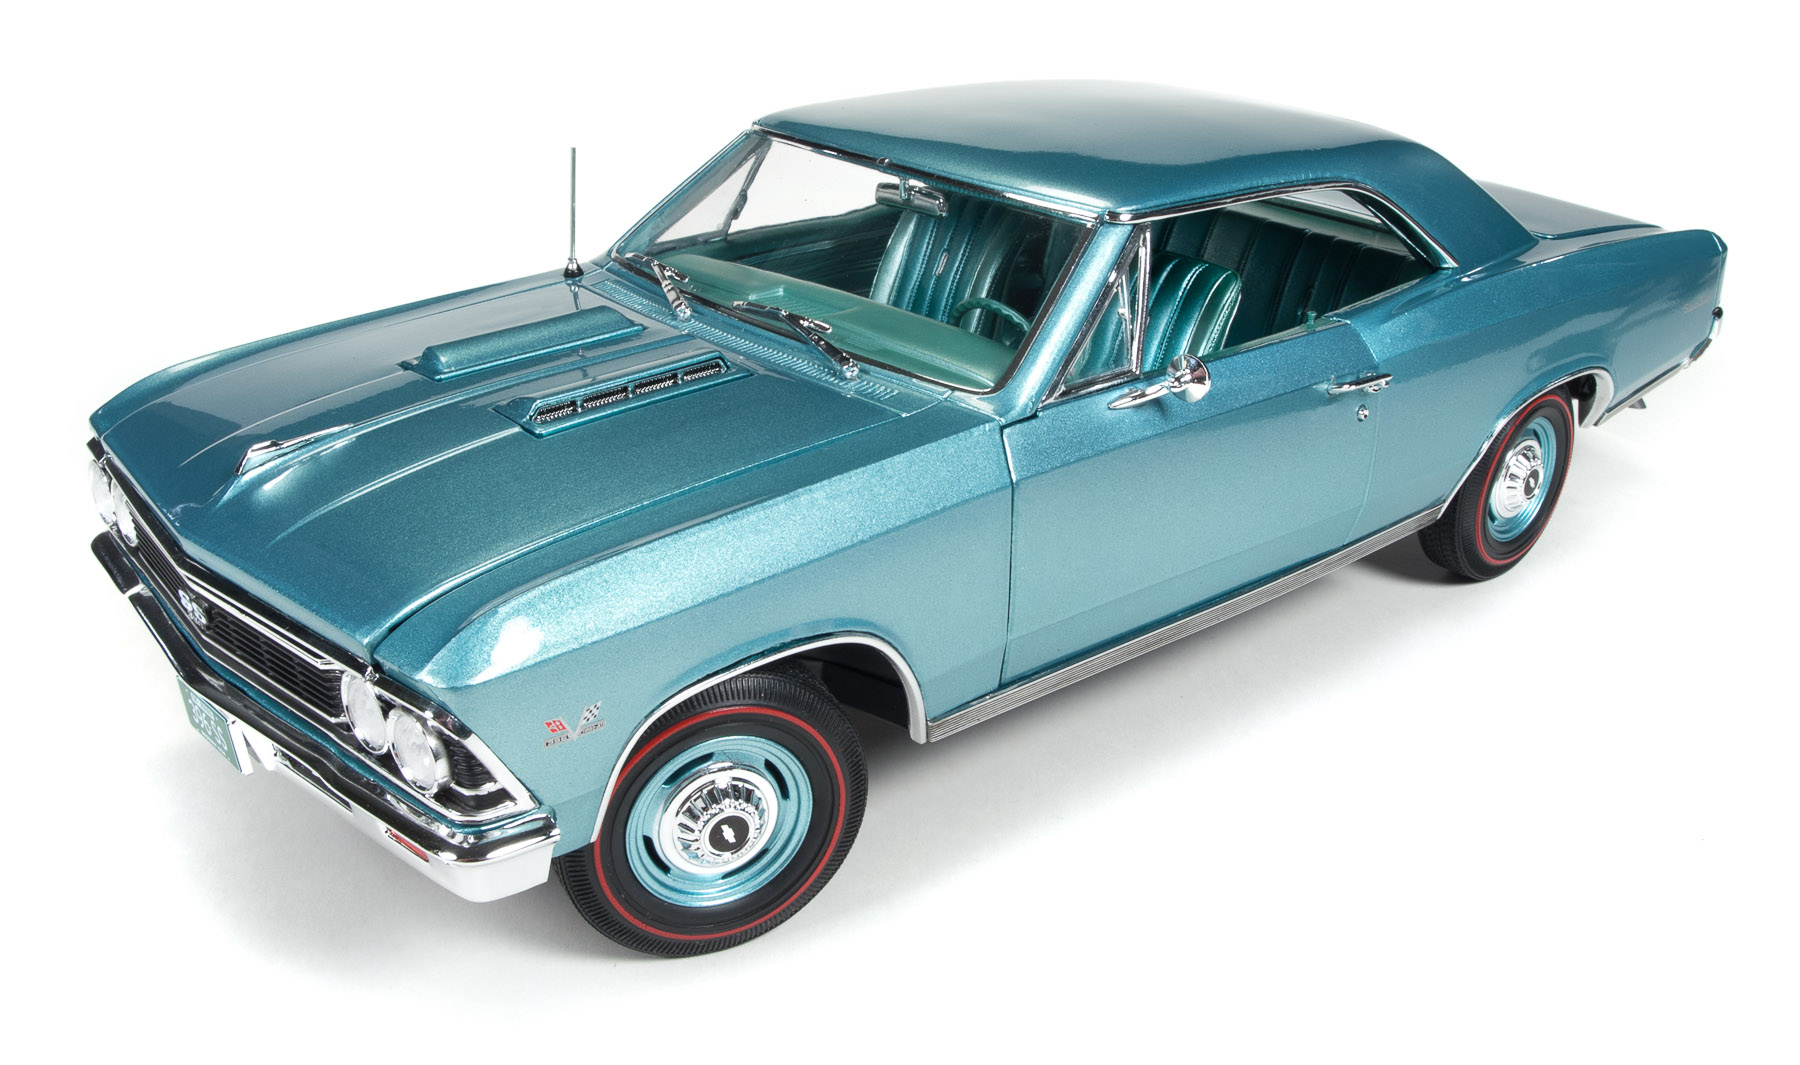 All Chevy 1971 chevrolet chevelle ss : 1966 Chevrolet Chevelle SS 396 (50th Anniversary 396 Engine) | Round2